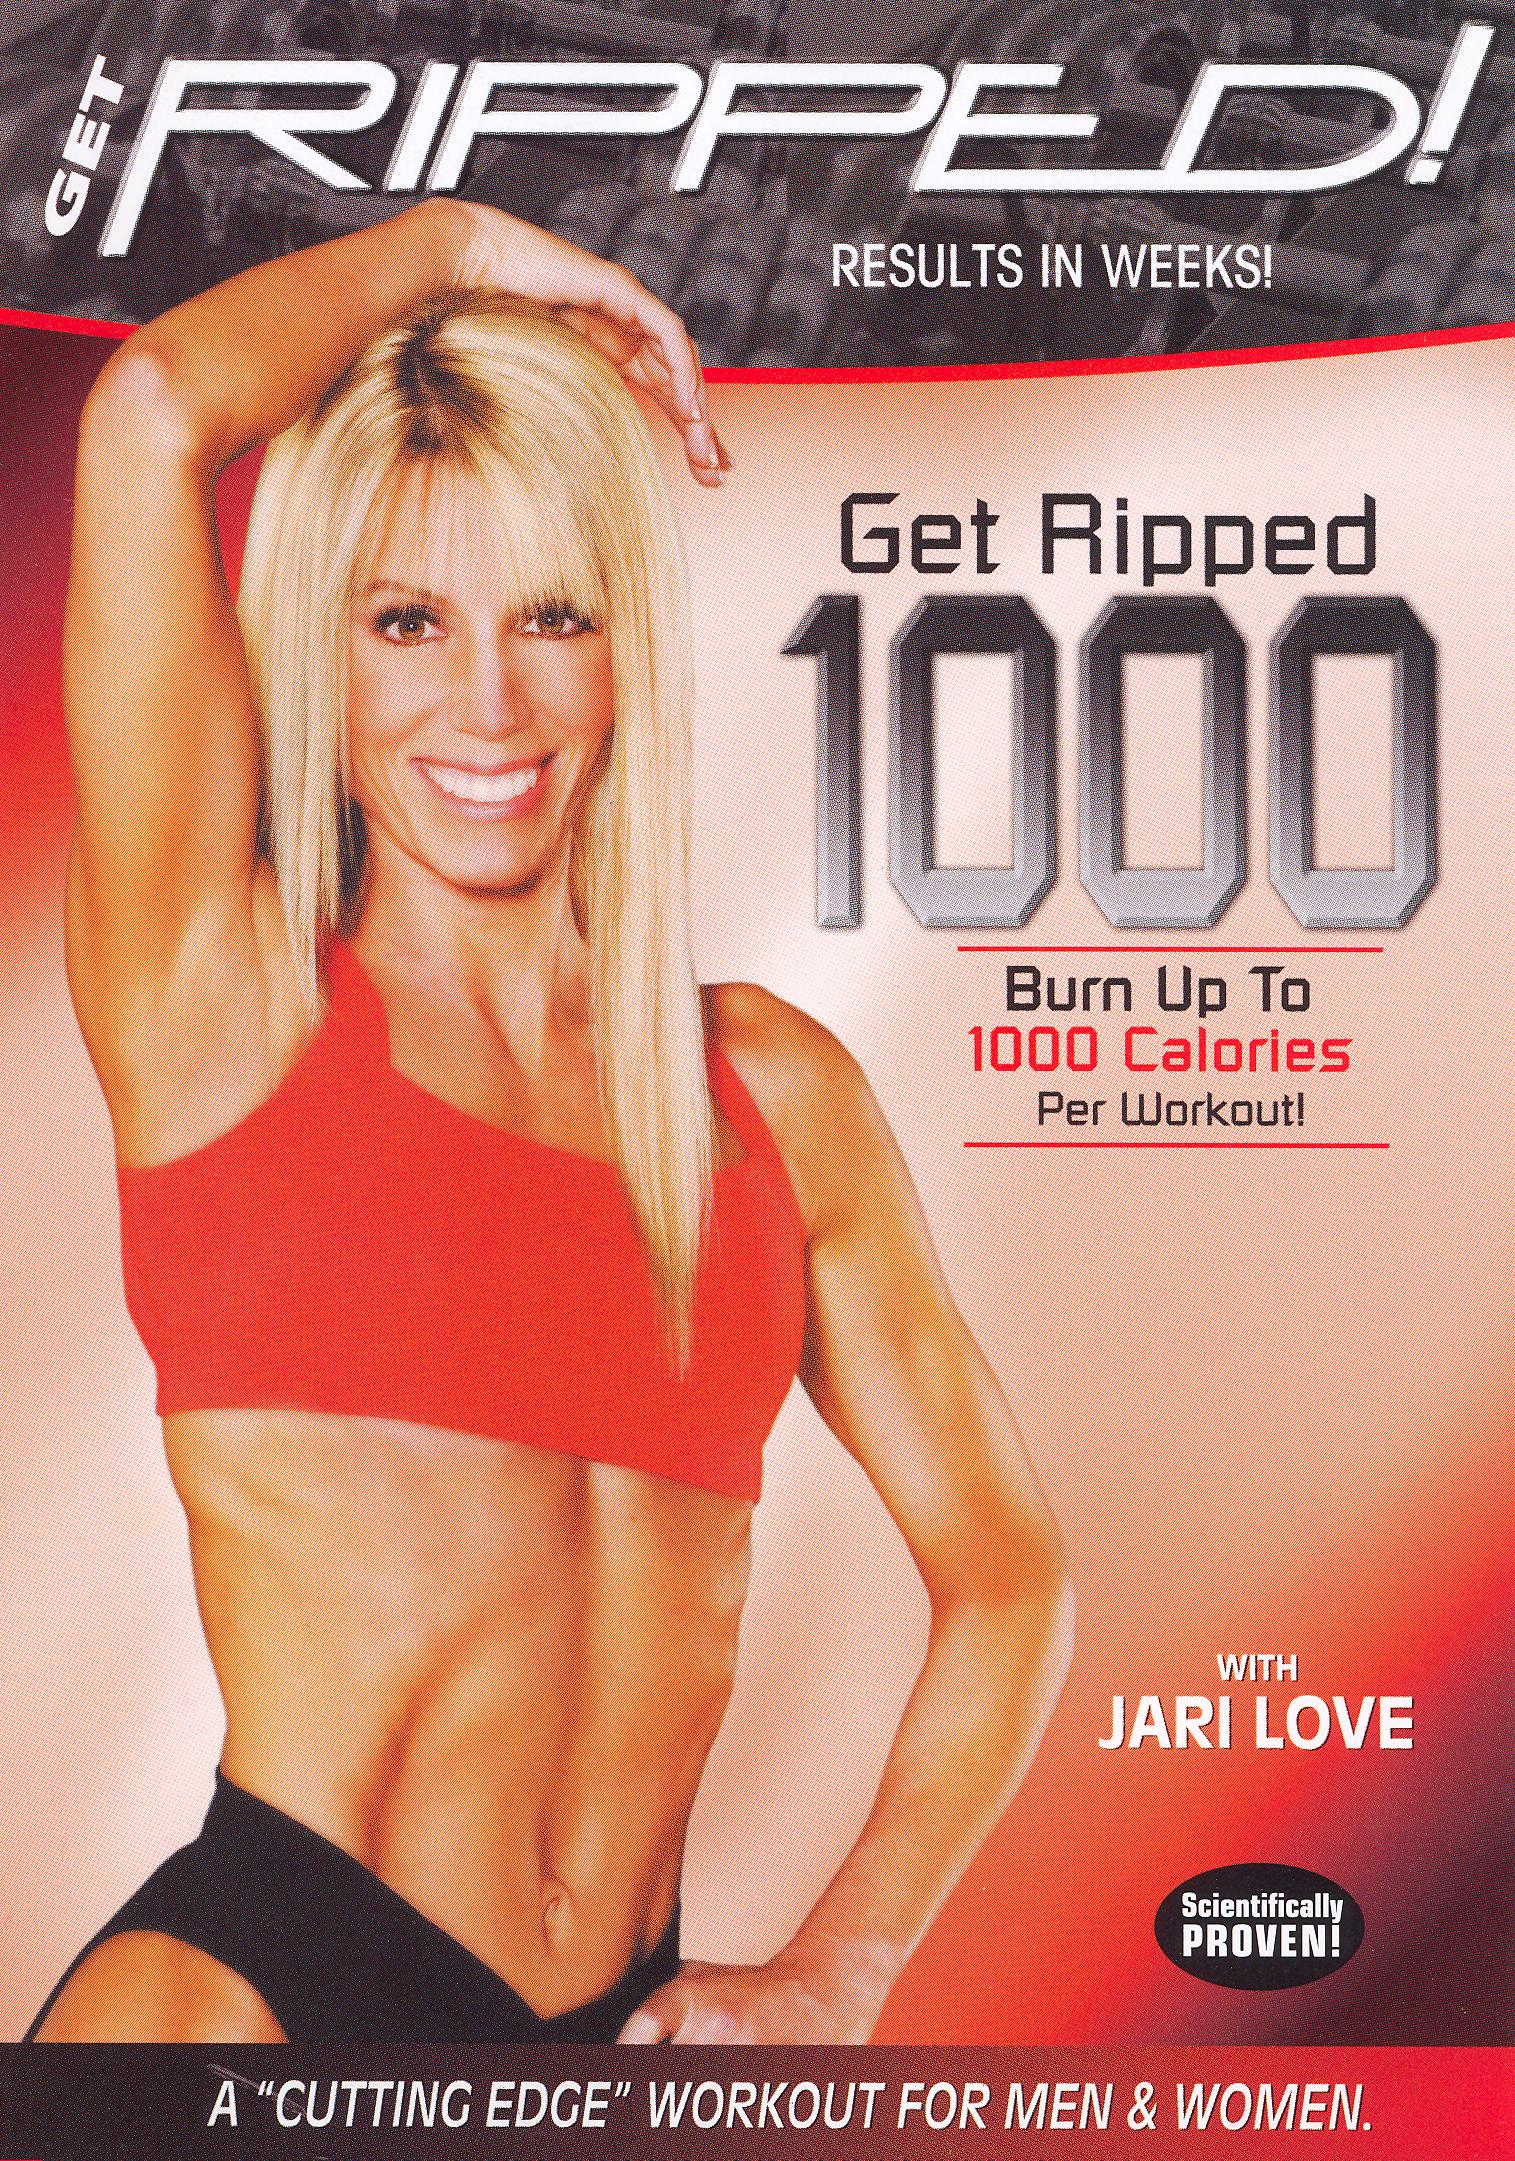 Get Ripped! Ripped 1000